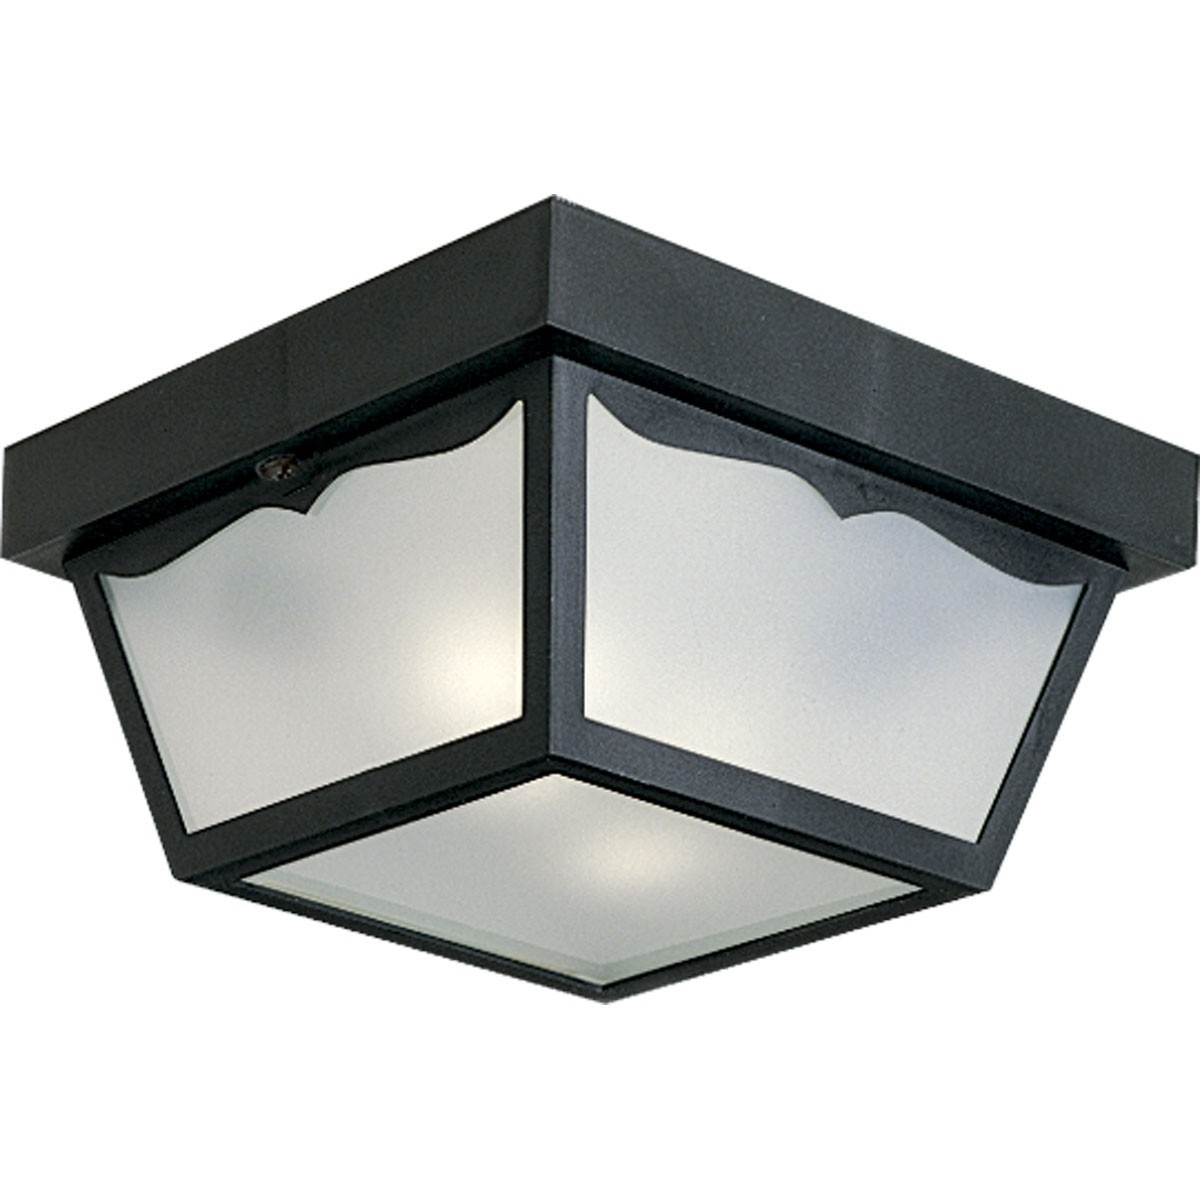 Most Recently Released Outdoor Ceiling Can Lights Inside 60w Outdoor Flush Mount Non Metallic Ceiling Light – Progress (View 9 of 20)